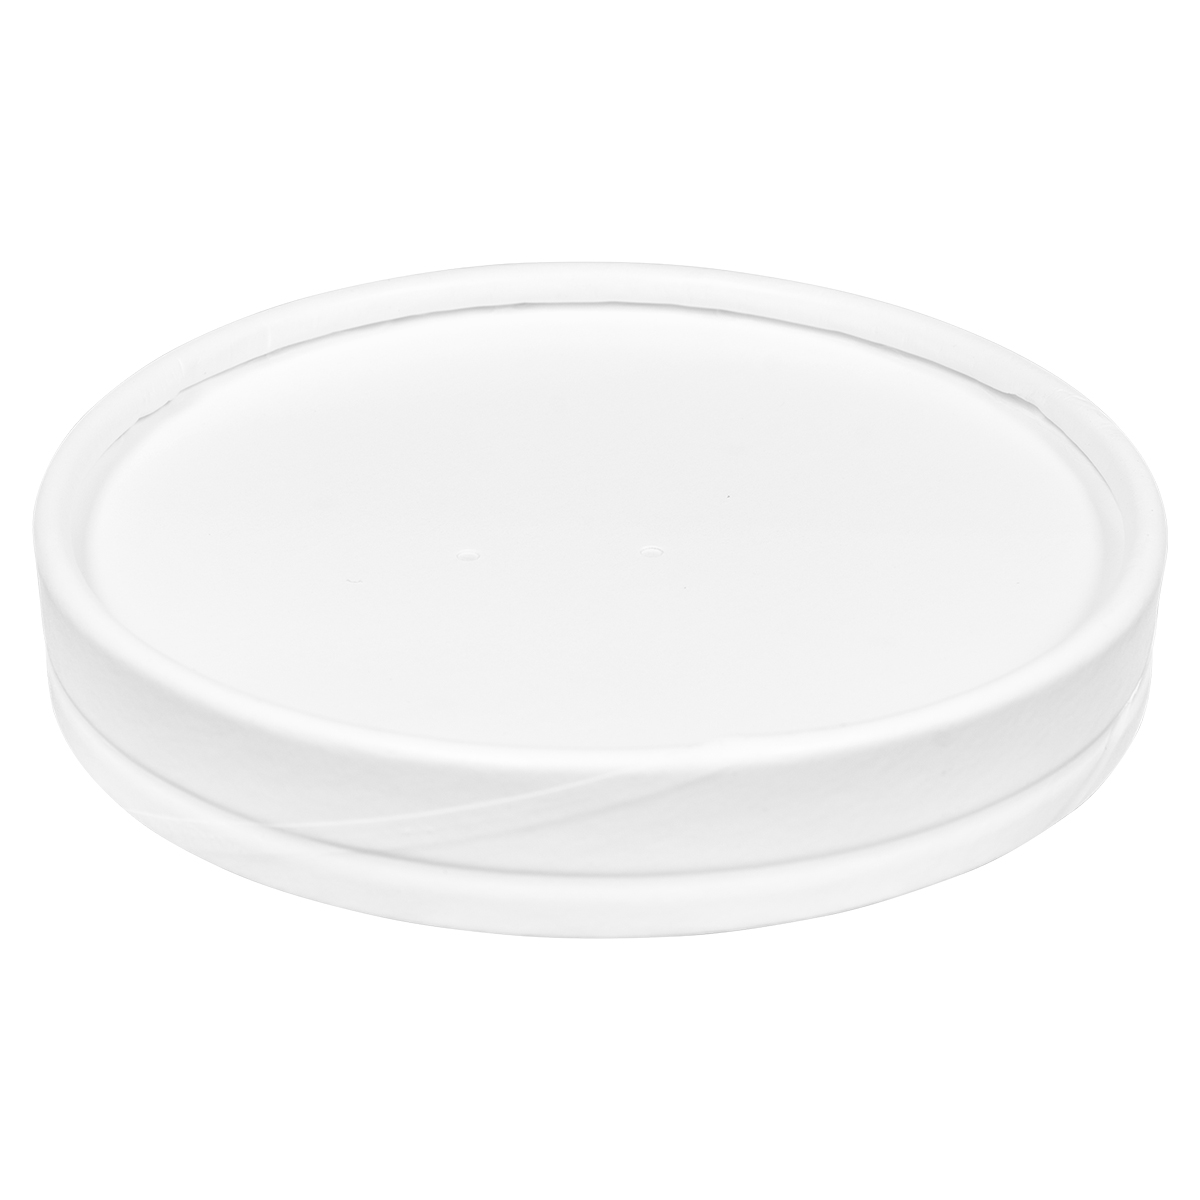 Inno-Pak Paper Lid Bulk Pack 8/10, 12, 16 oz TALL (500 ct)